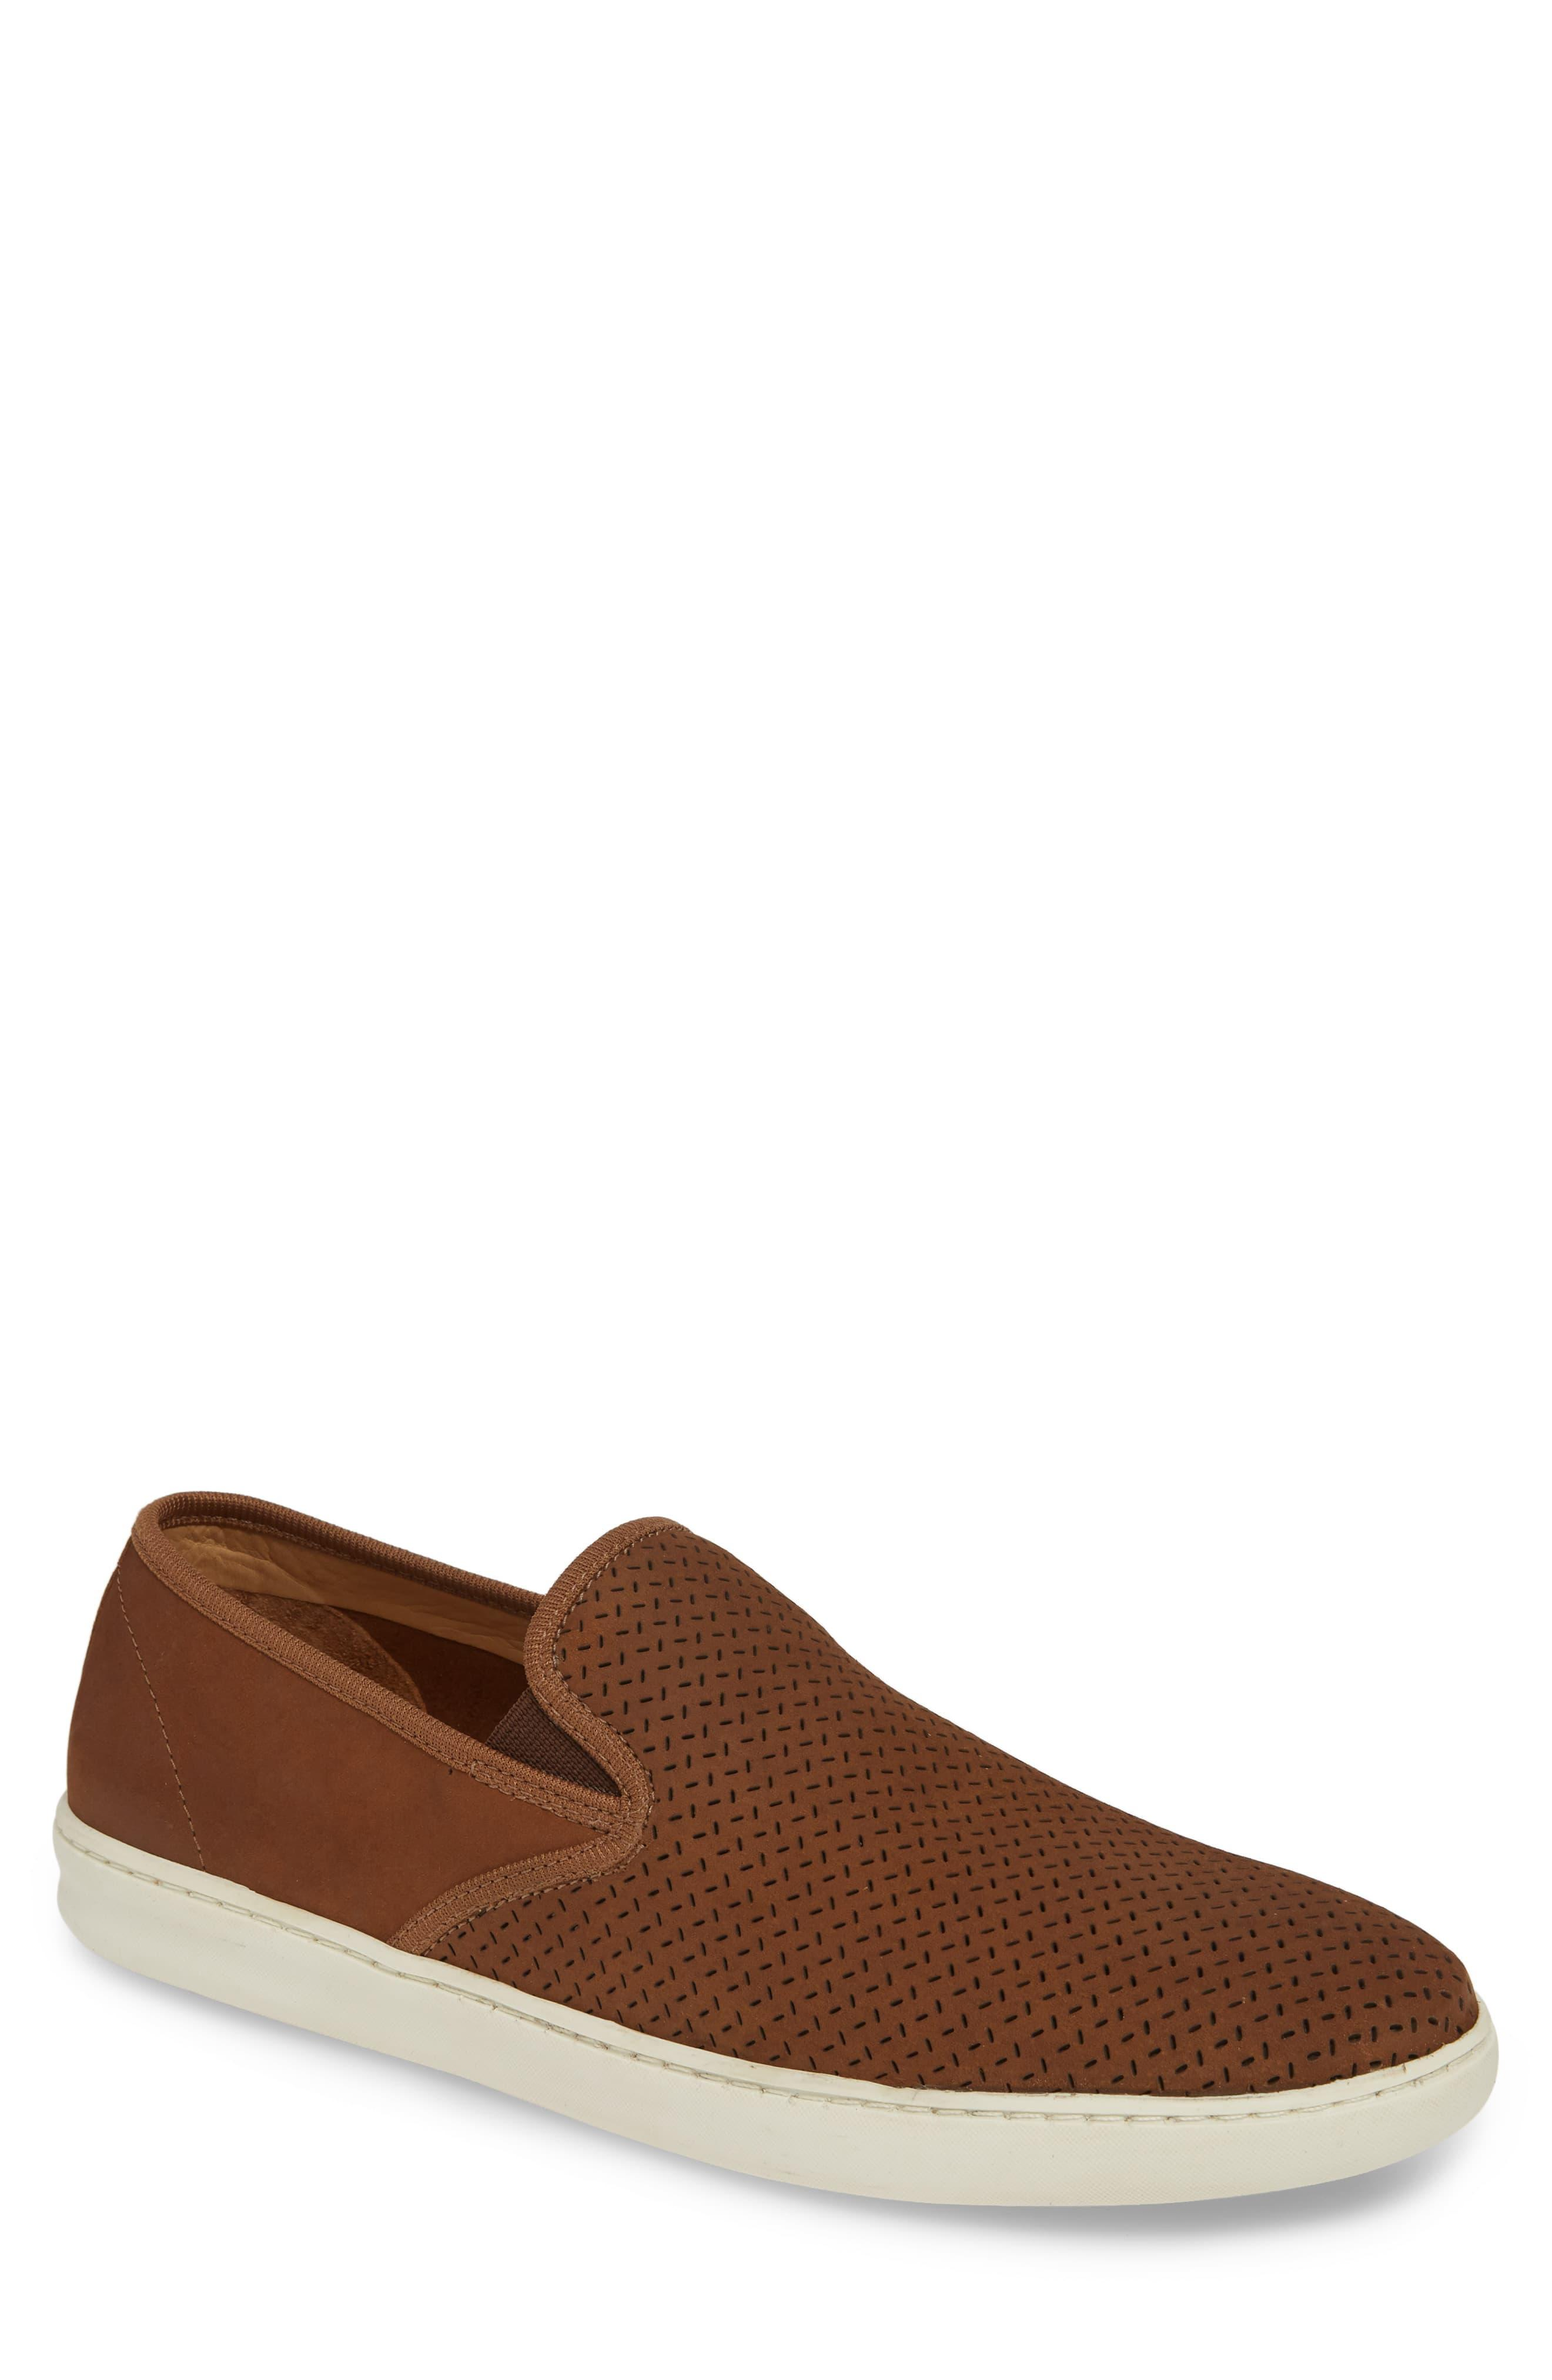 1901 Leather Malibu Perforated Loafer